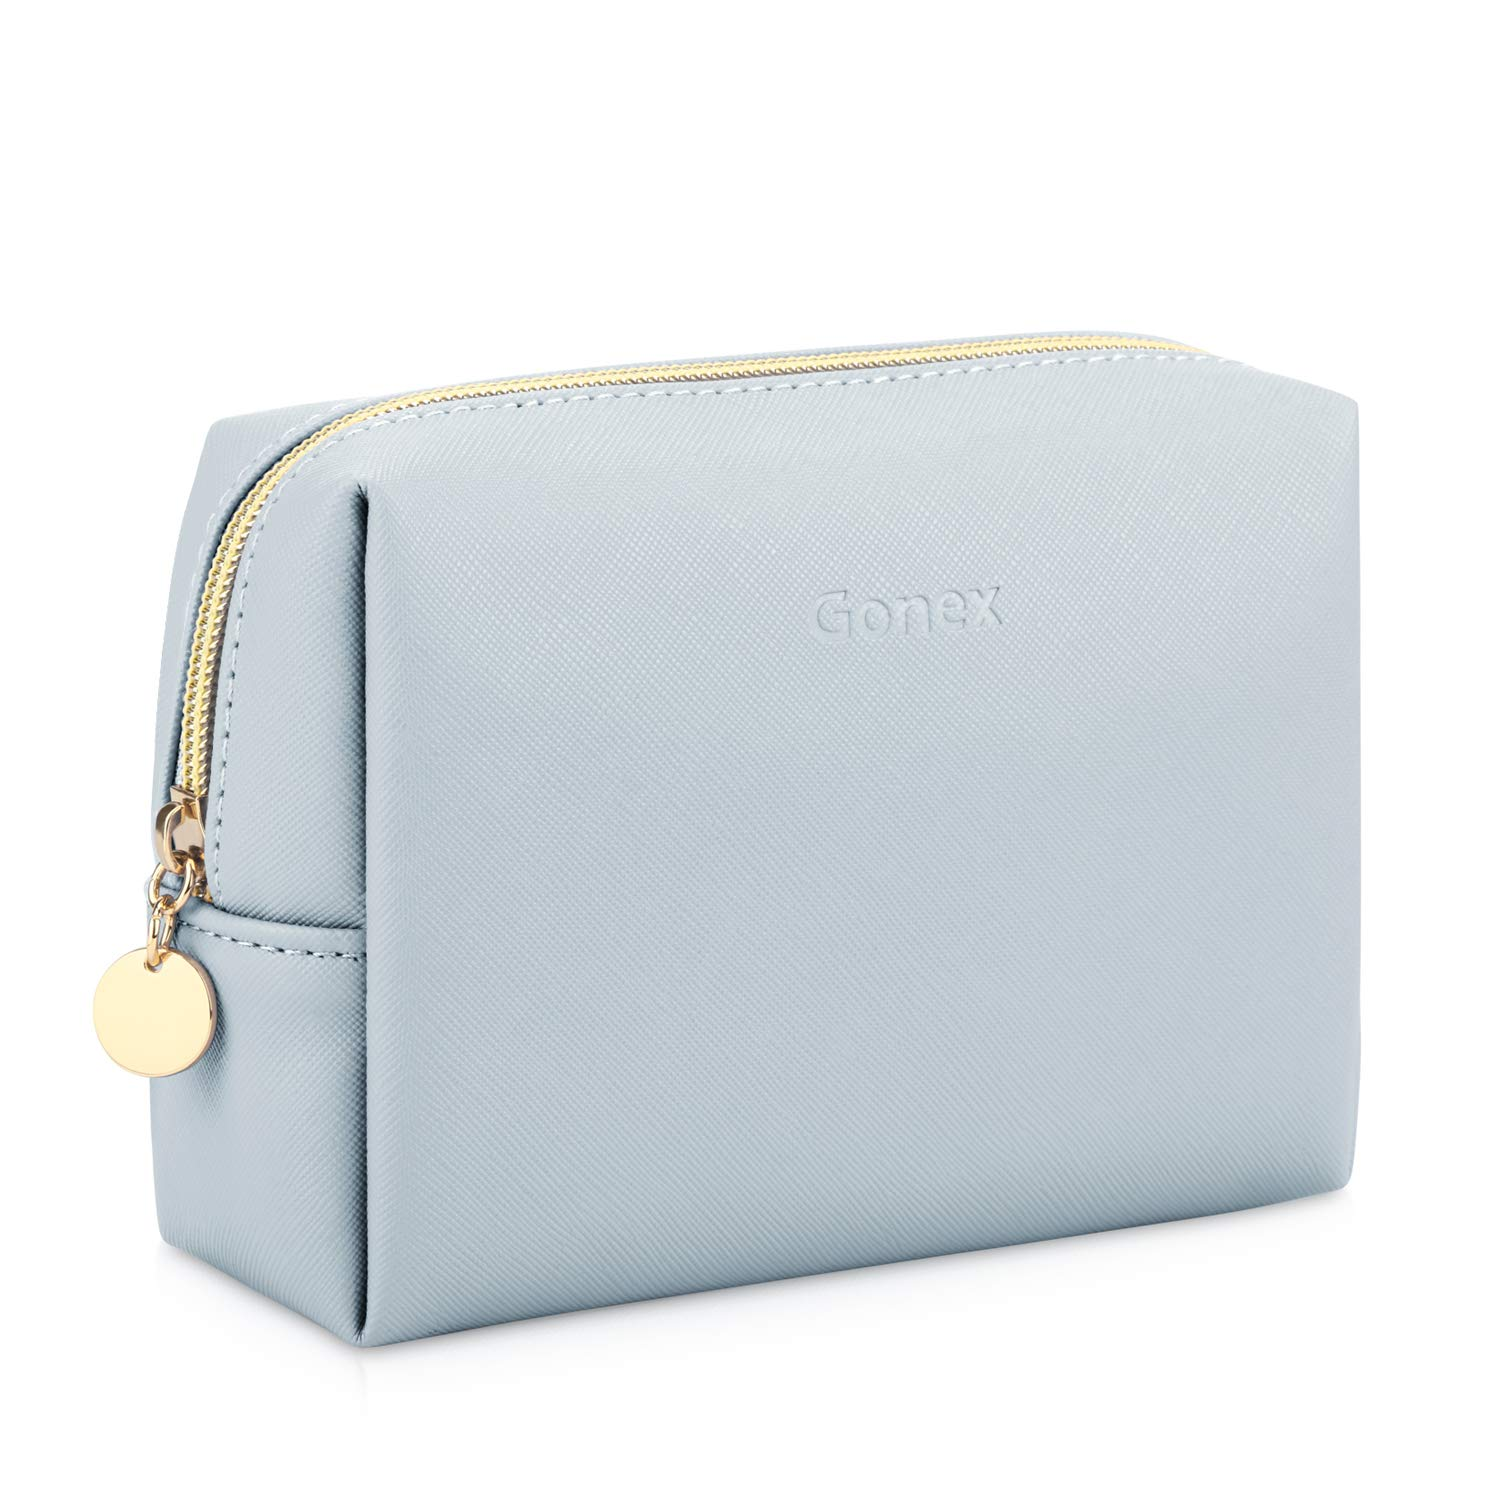 Sydney Love Accessory Pouch